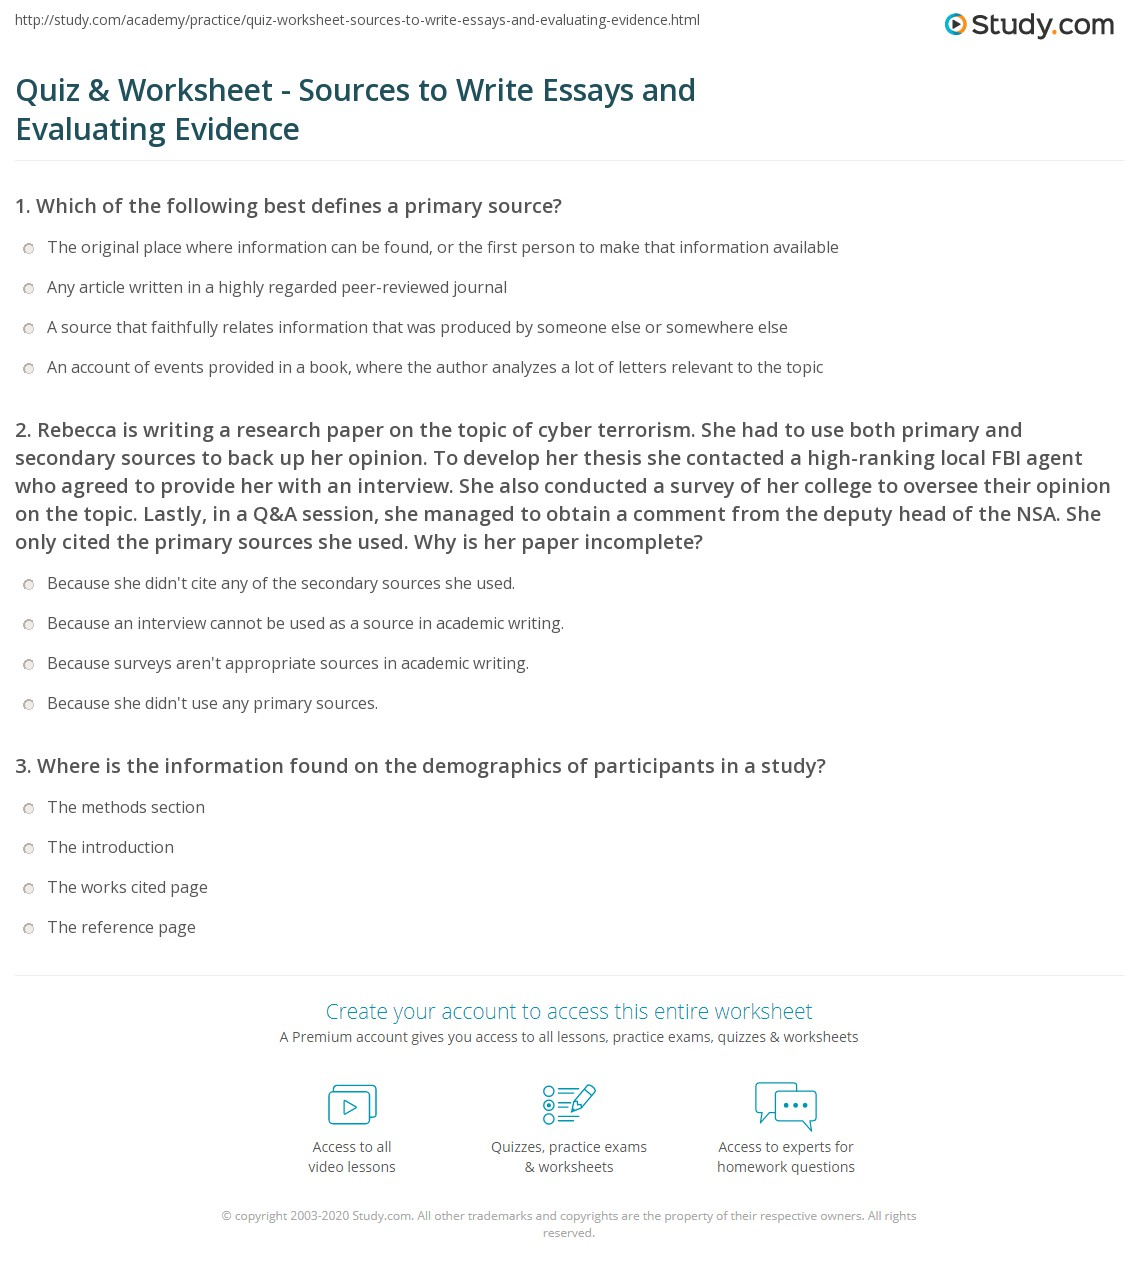 quiz worksheet sources to write essays and evaluating evidence rebecca is writing a research paper on the topic of cyber terrorism she had to use both primary and secondary sources to back up her opinion